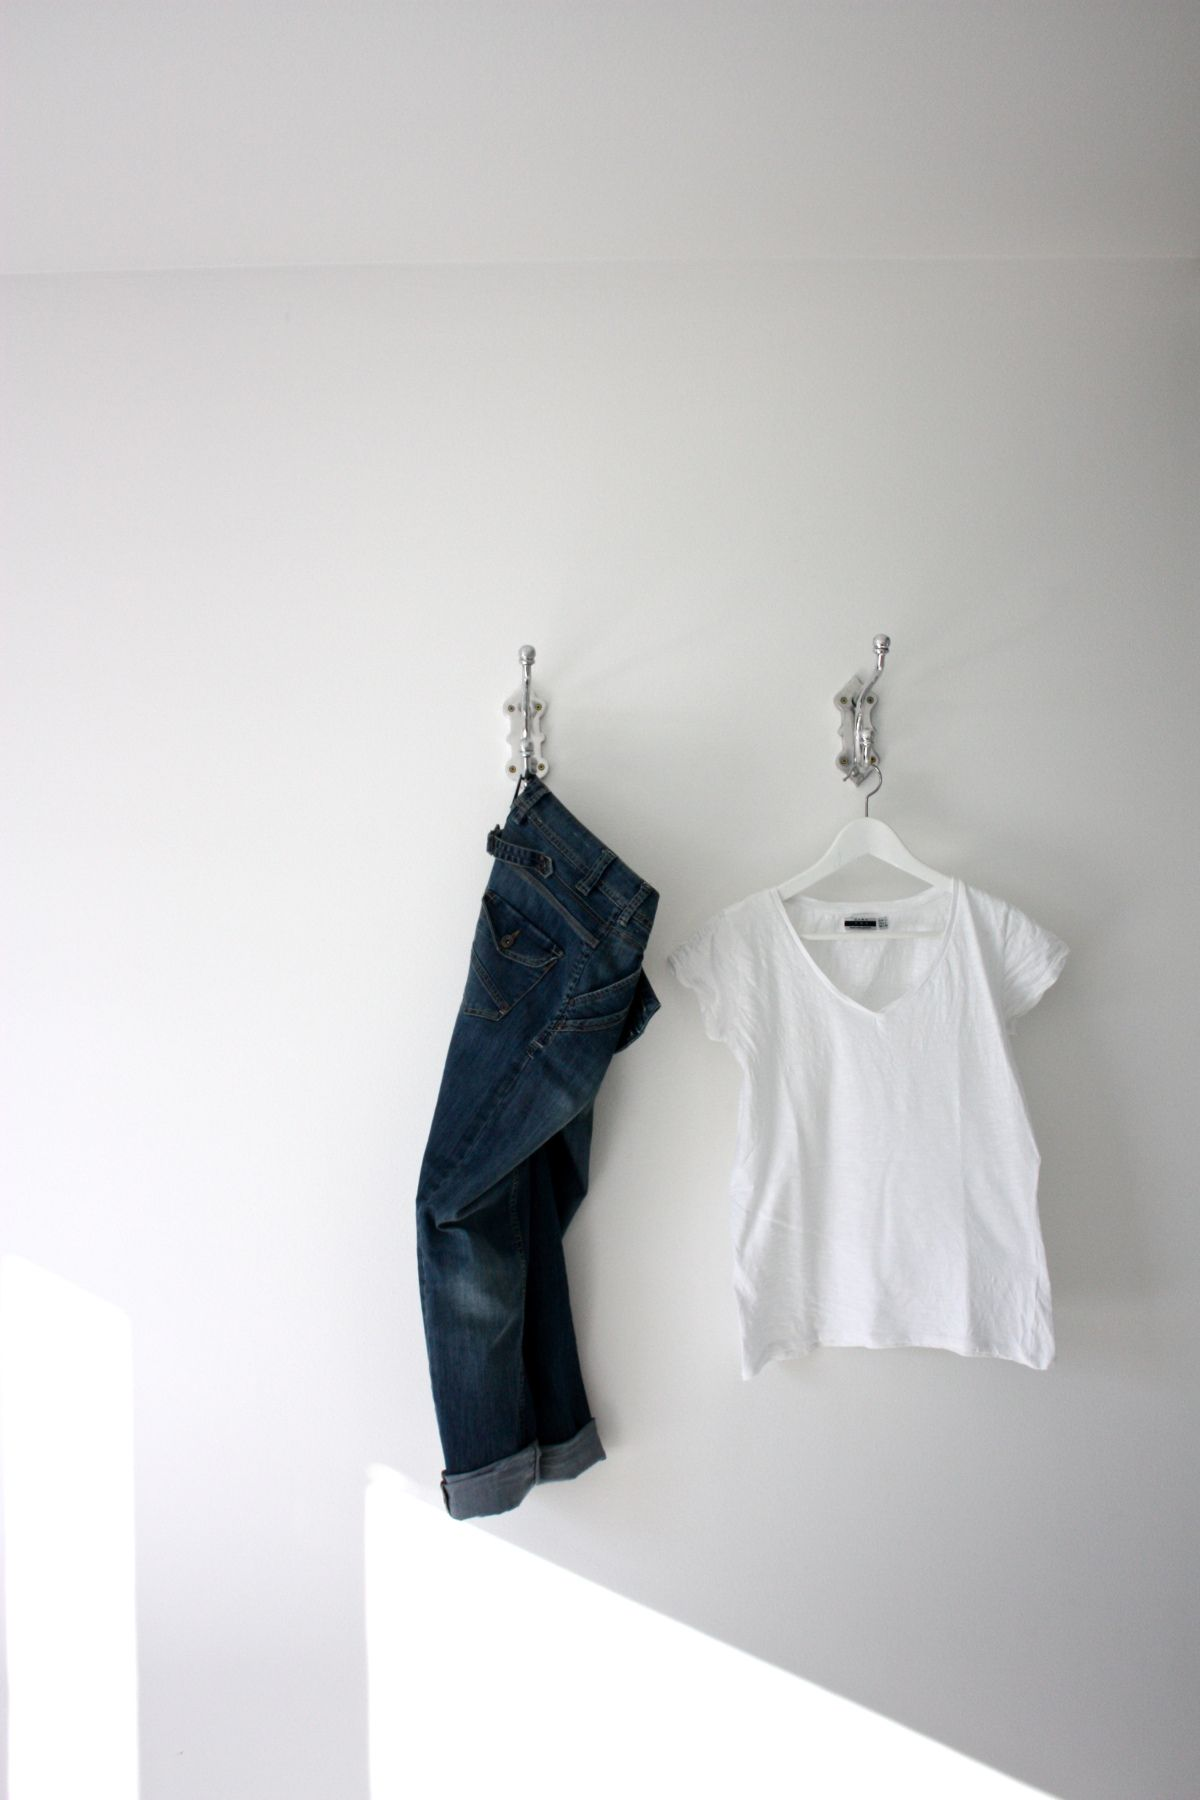 Jeans and white tee